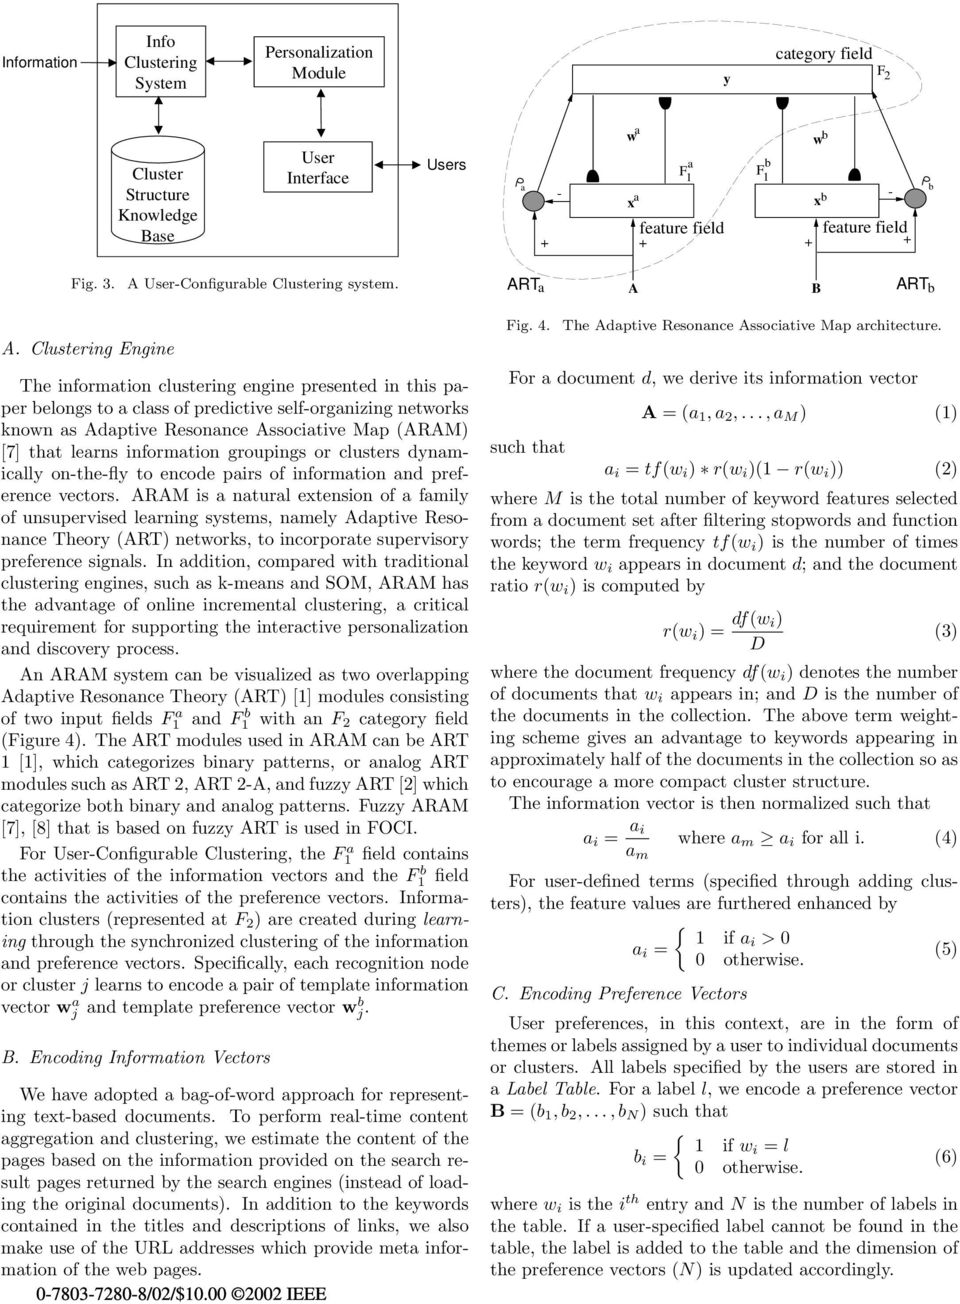 Clustering Engine The information clustering engine presented in this paper belongs to a class of predictive self-organizing networks known as Adaptive Resonance Associative Map (ARAM) [7] that